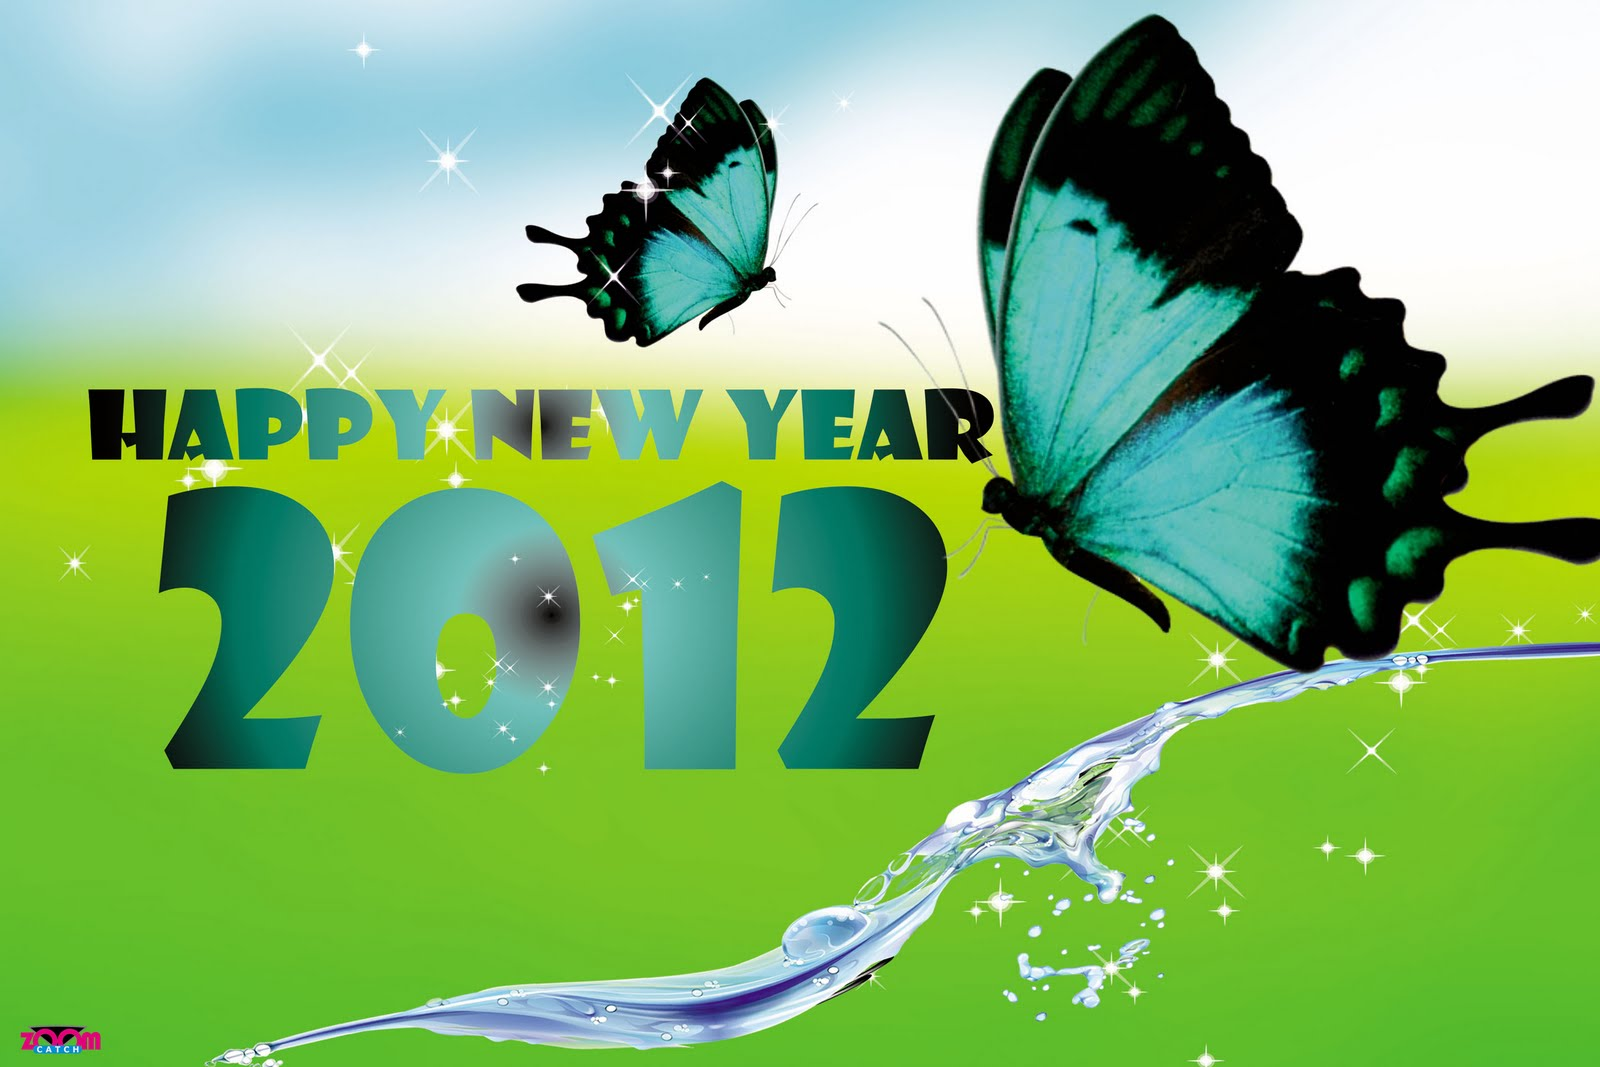 New Year 2012 Cards Greeting Cards Wallpaper New Year 2012. 1600 x 1067.Funny Happy New Years E-cards